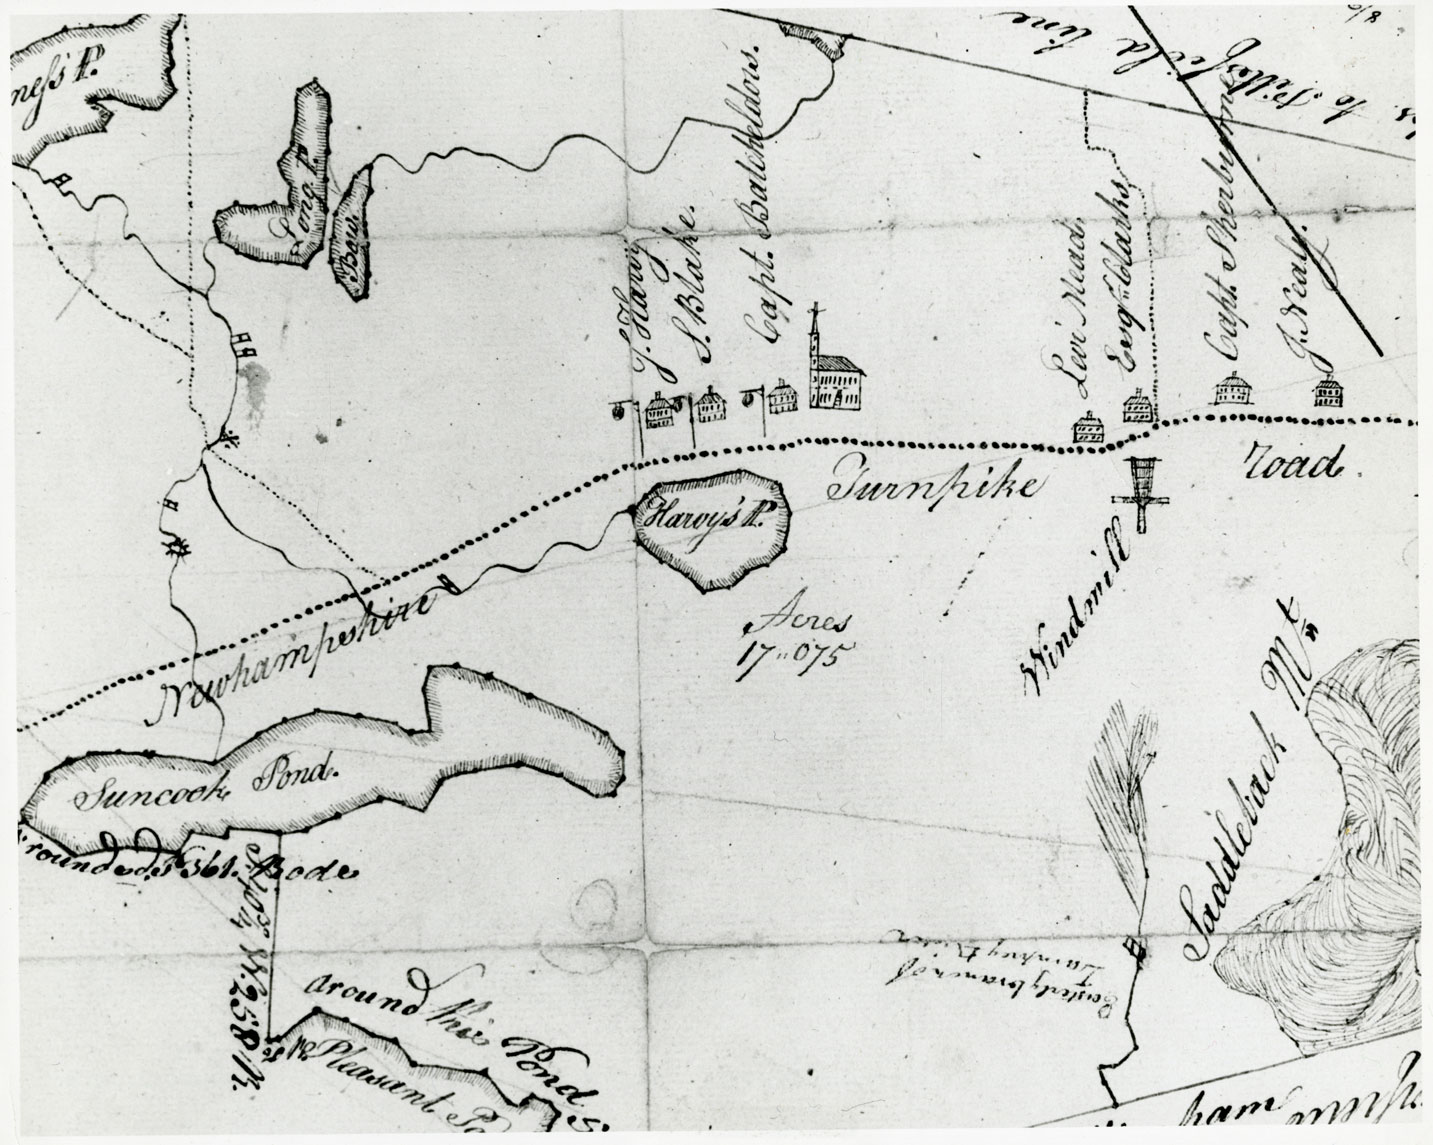 A close up of a black and white hand-drawn map shows a dotted line running horizontally through the page. Below the line are a few ponds as well as acres marked and other items of interest. Directly above the line sit seven small houses and a church. There are other rivers and ponds marked above the line. All items are labeled in cursive script. The line is labeled